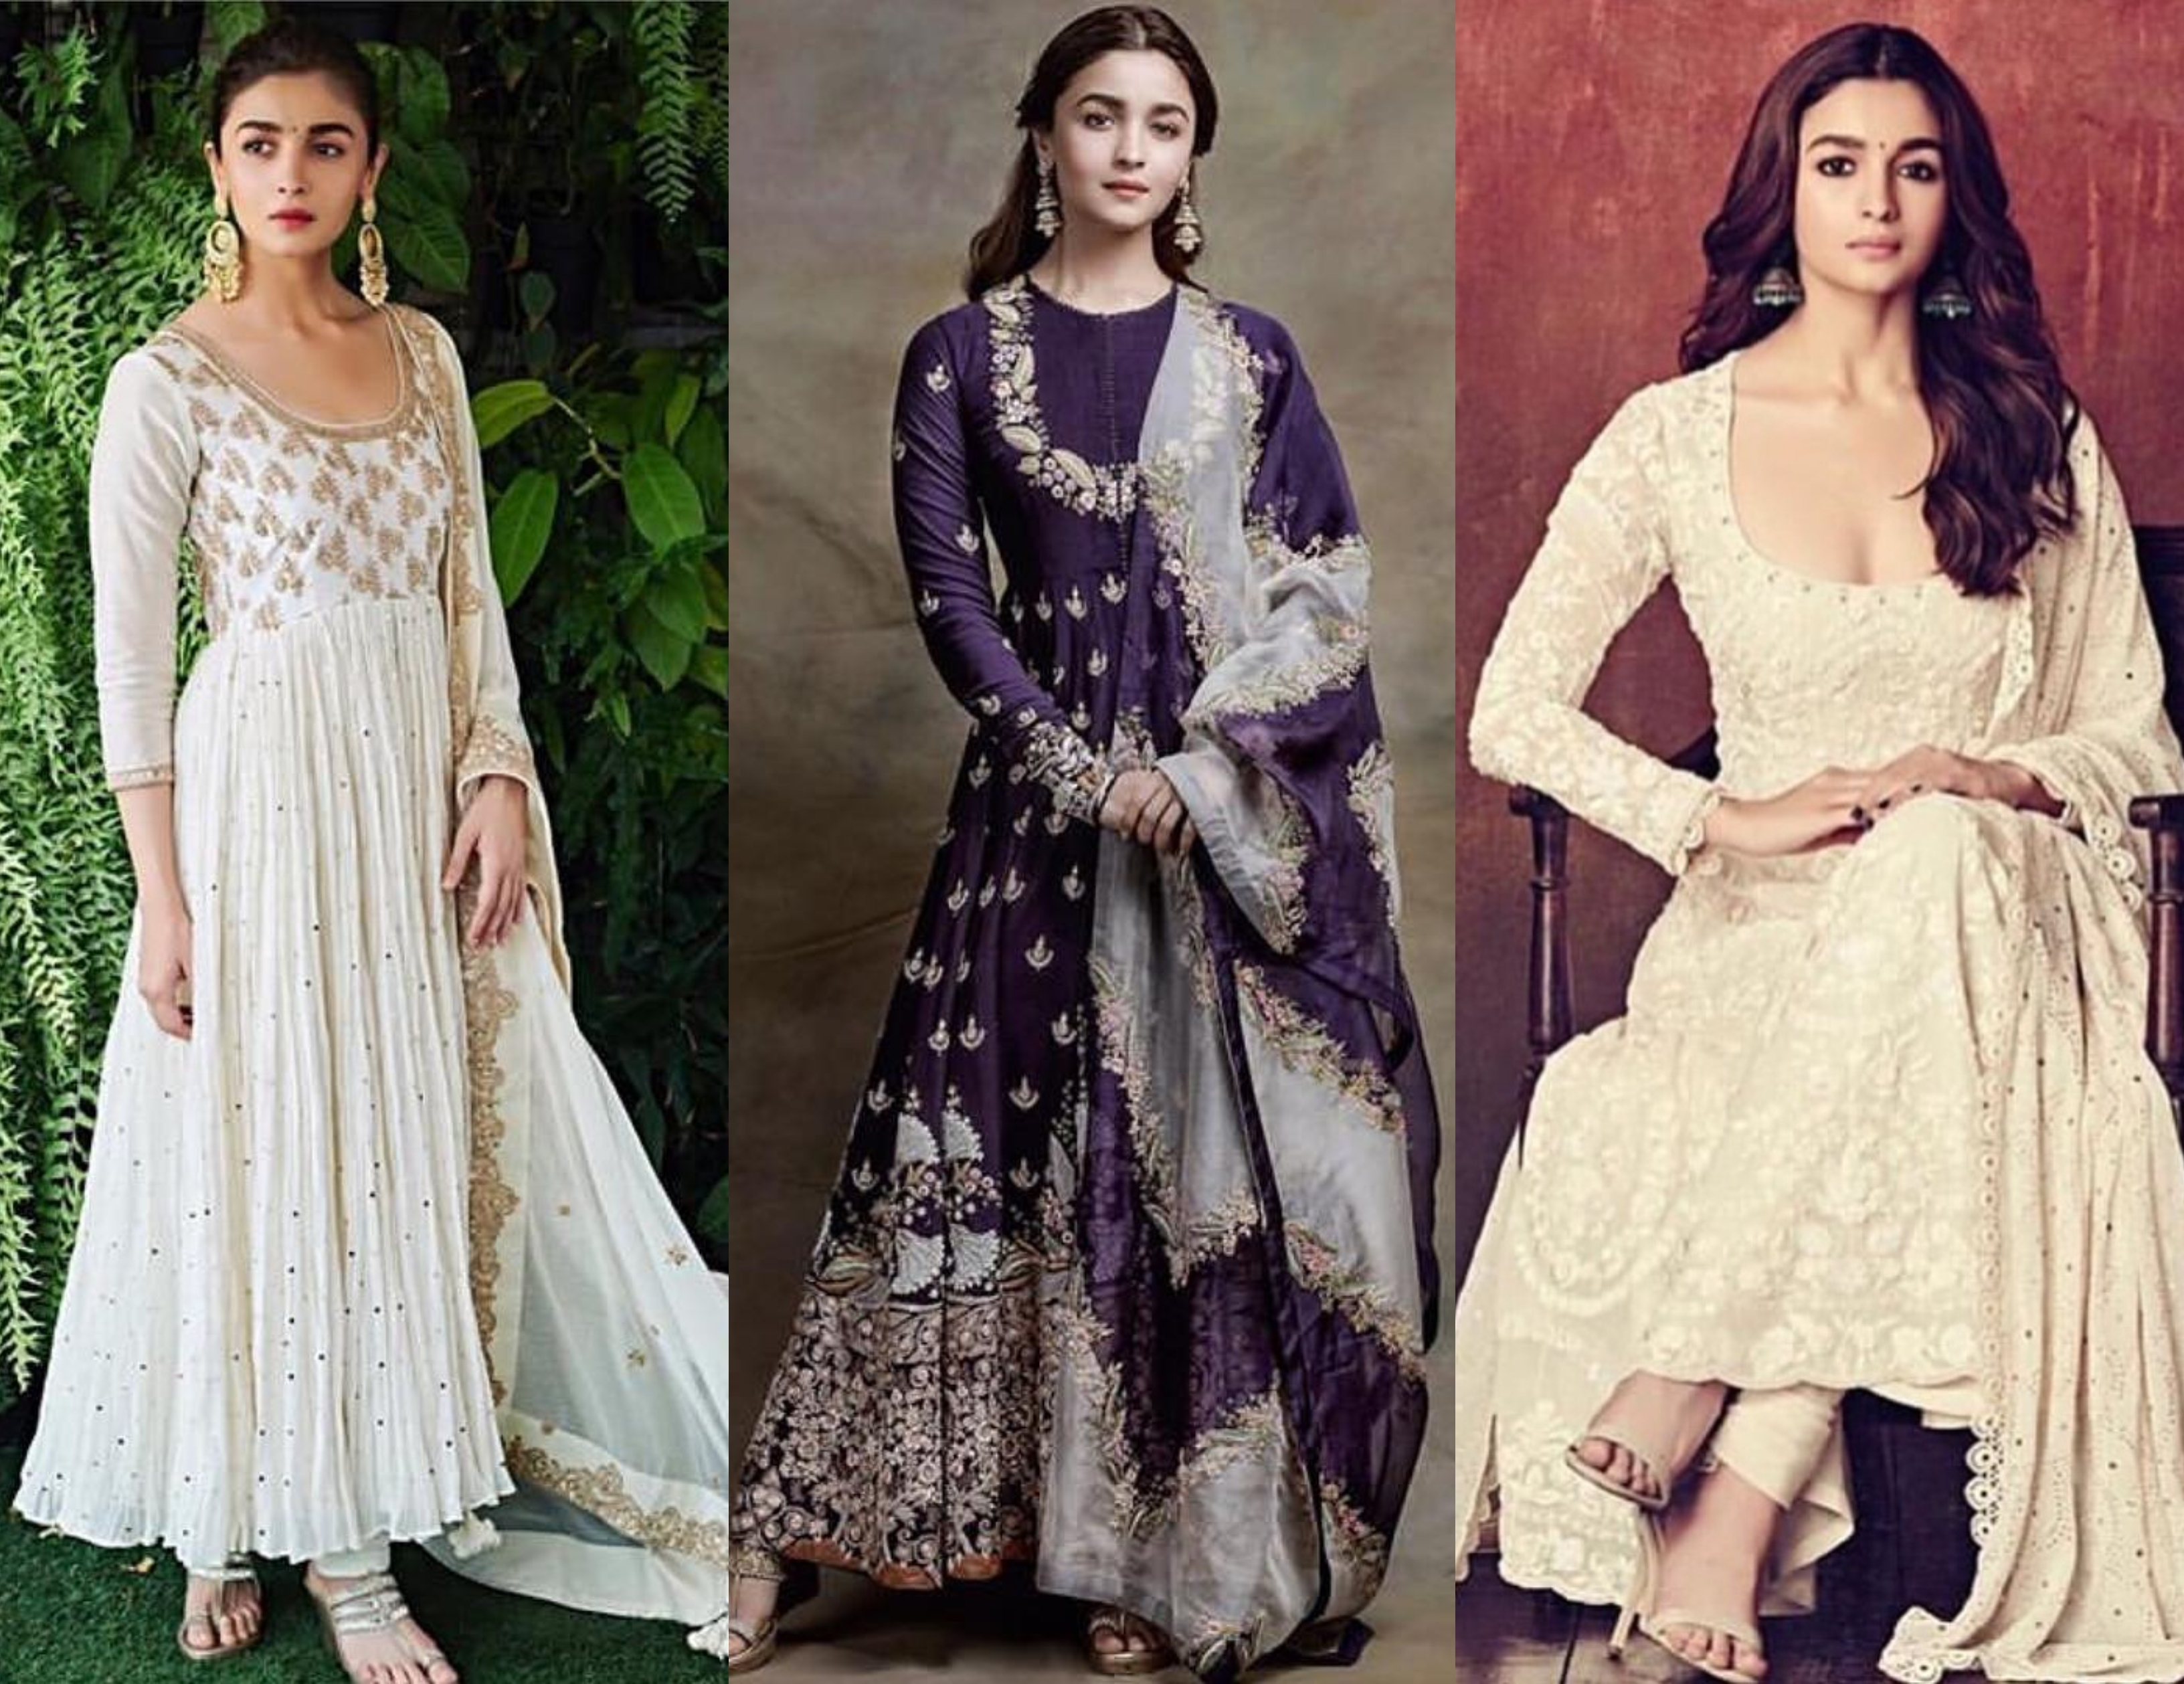 5 Anarkali's from Alia Bhatt that we definitely need to steal from her closet